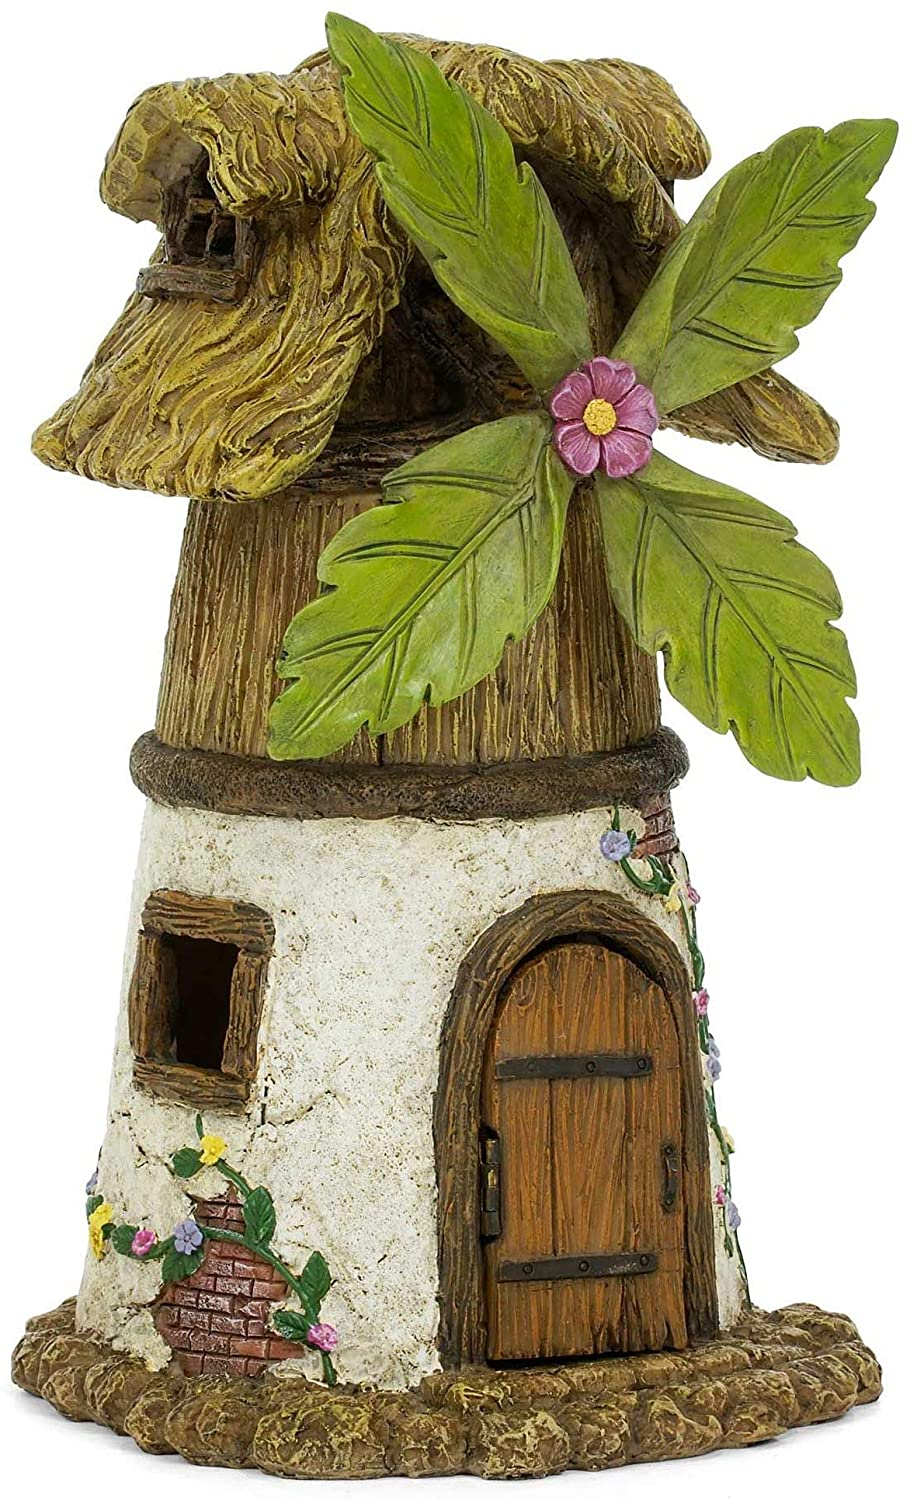 Fairy Garden Windmill House | Miniature Supplies | Accessories | movable windmill | MG326